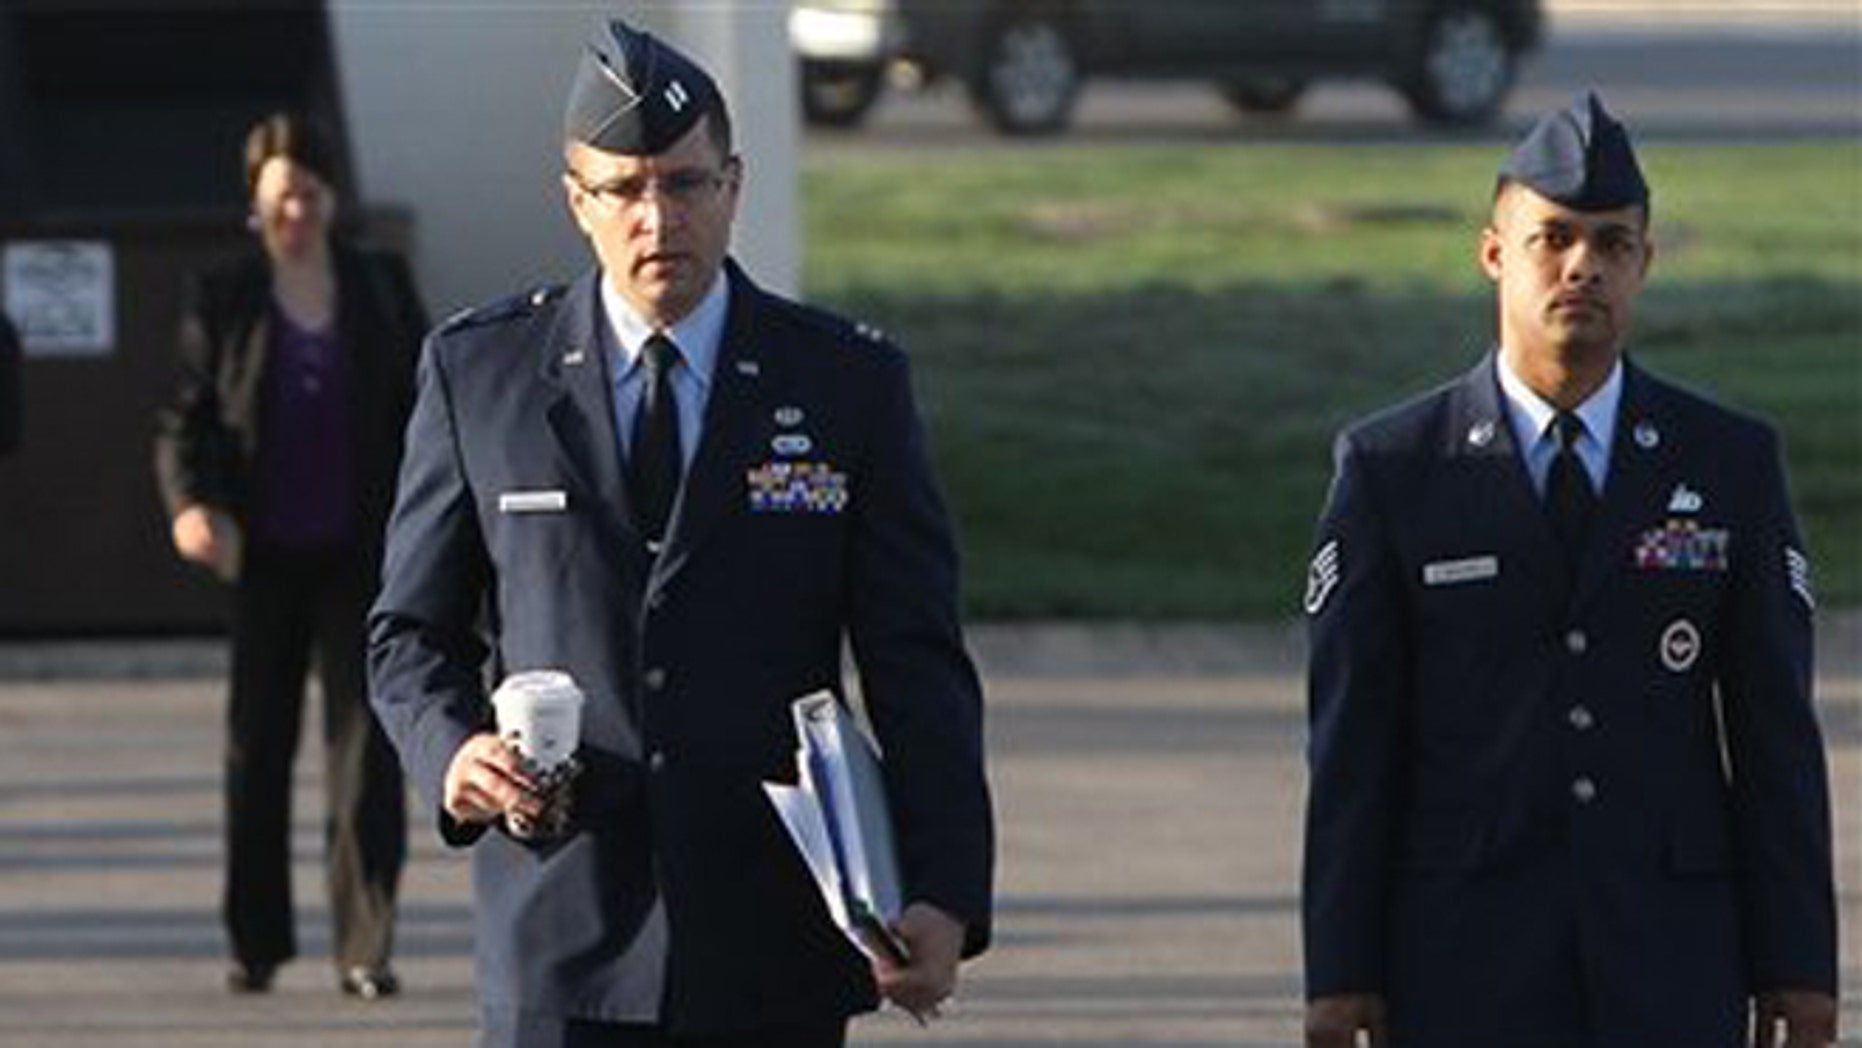 July 20, 2012 Air Force Staff Sgt. Luis Walker, right,  arrived for the fourth day of his trial at Lackland Air Force Base in San Antonio, Texas.